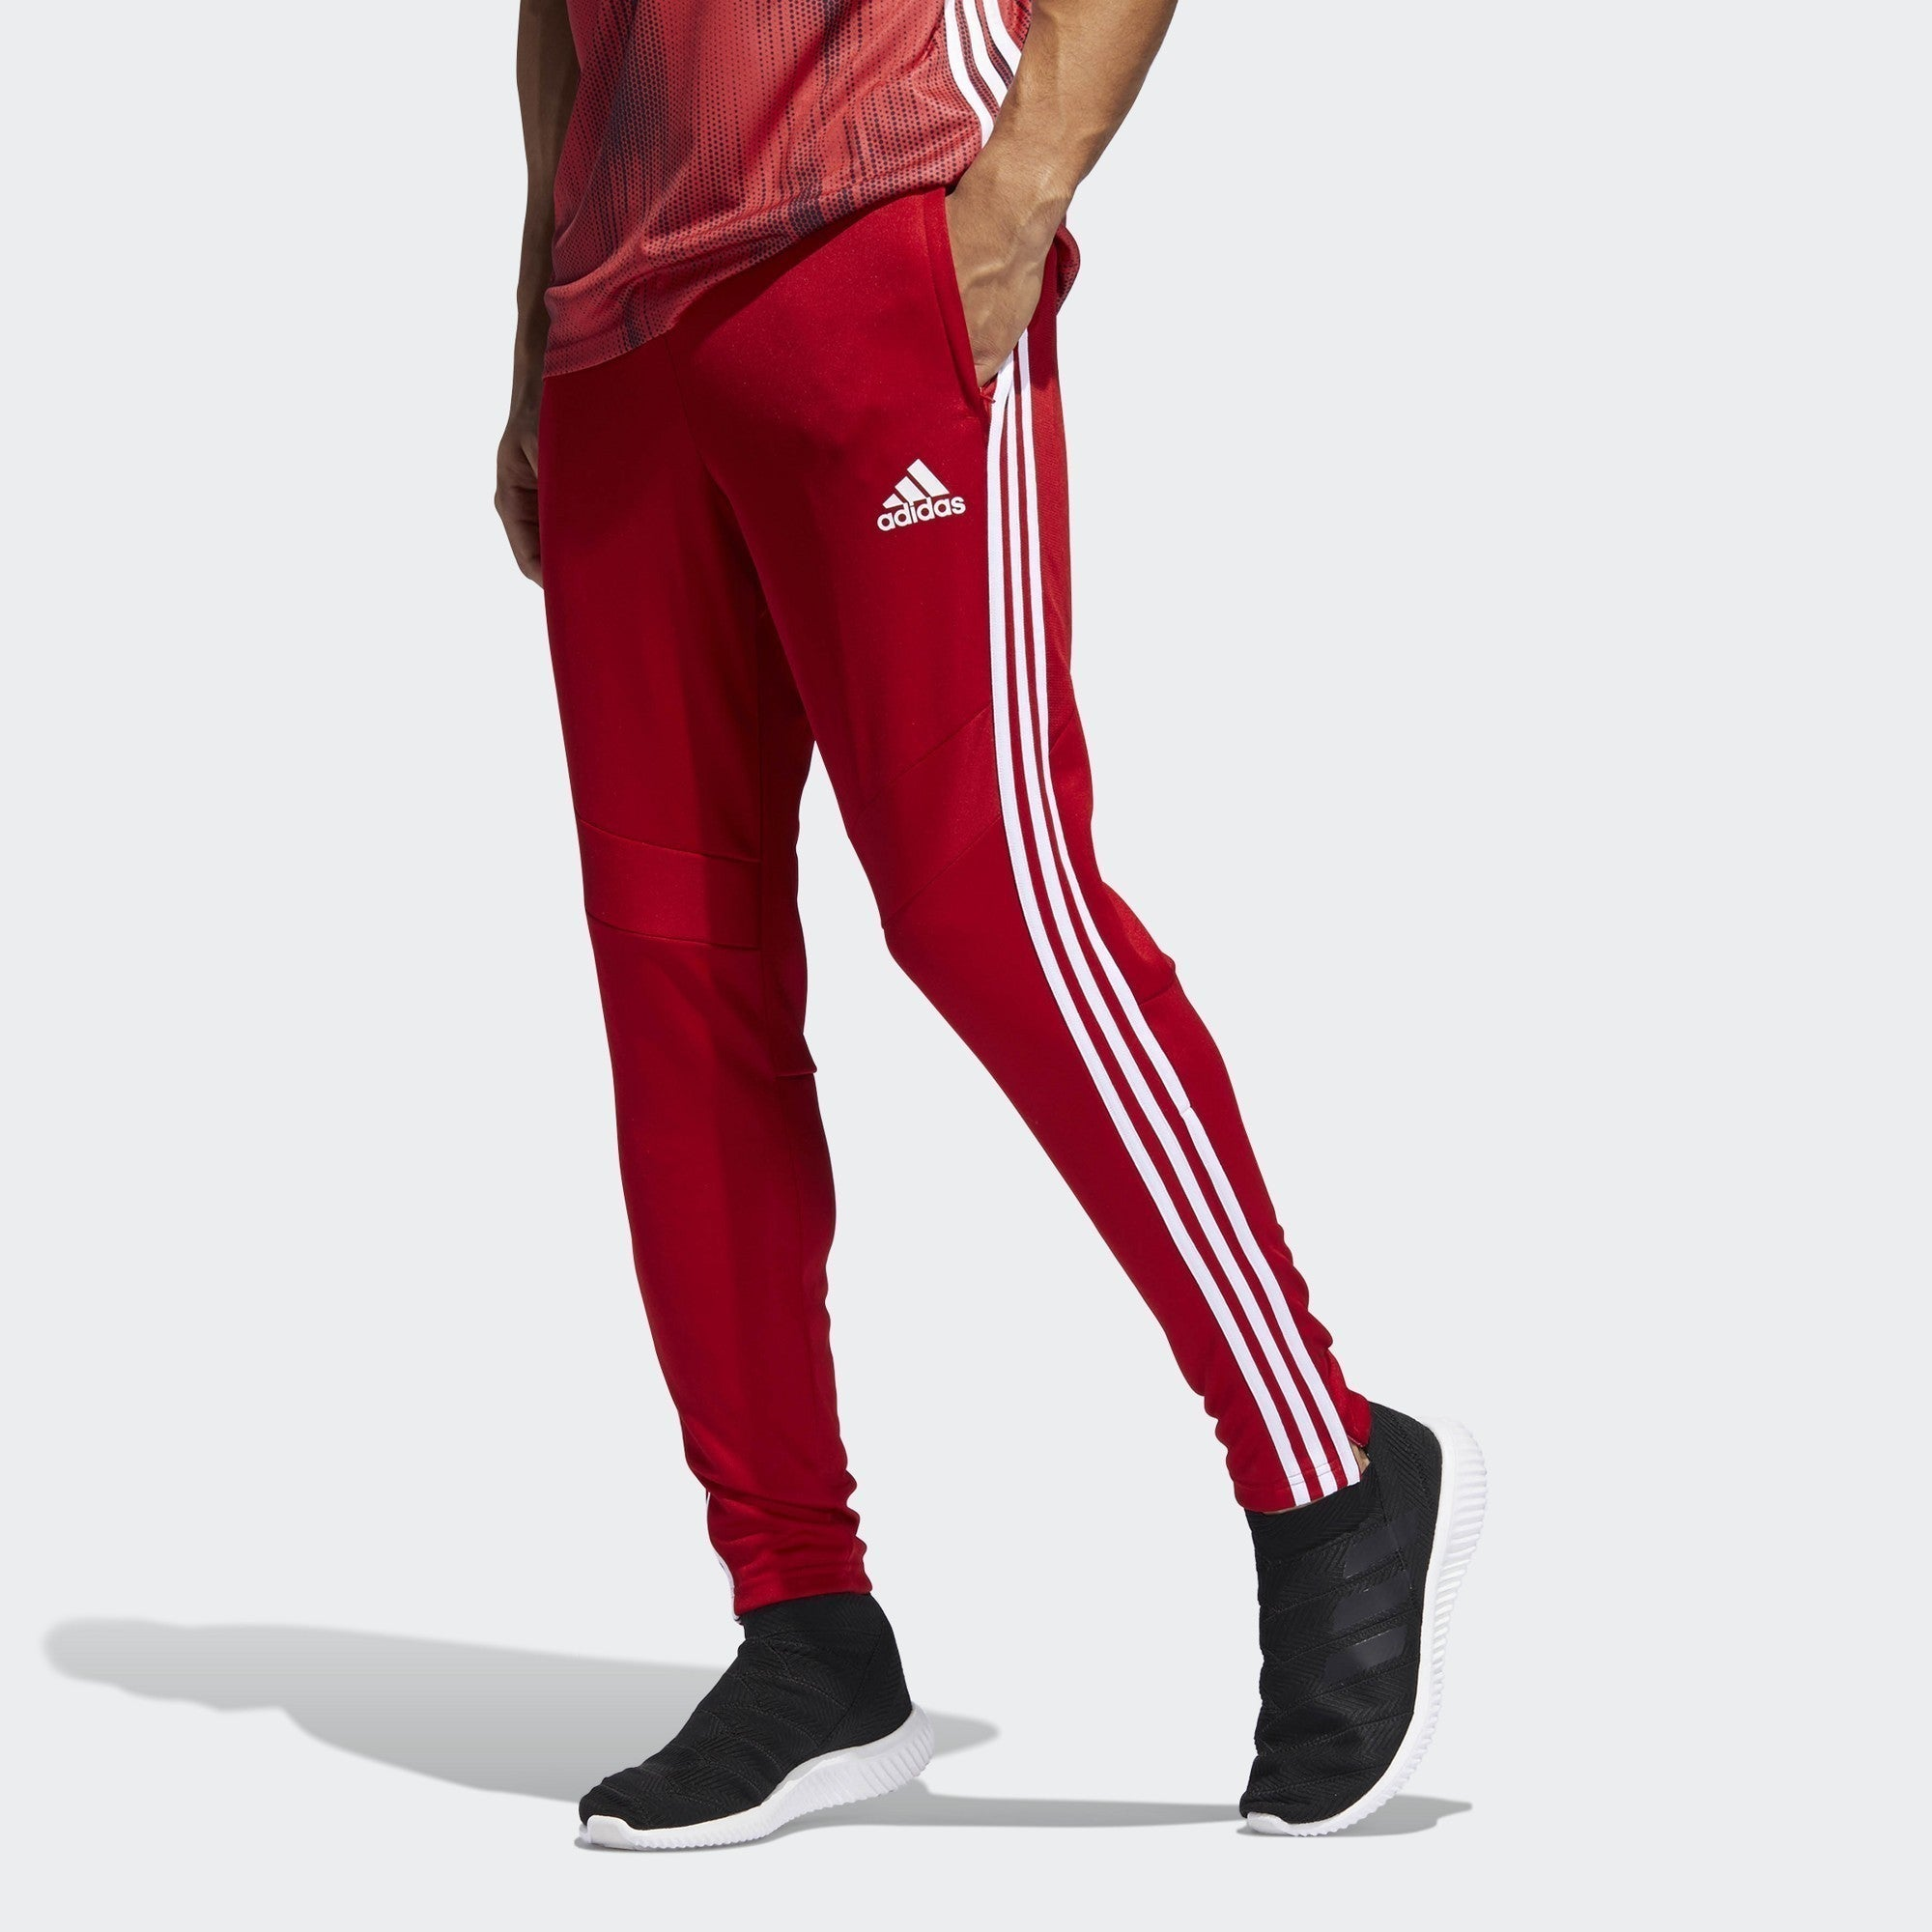 Men's Tiro 19 Training Pants - Red/White